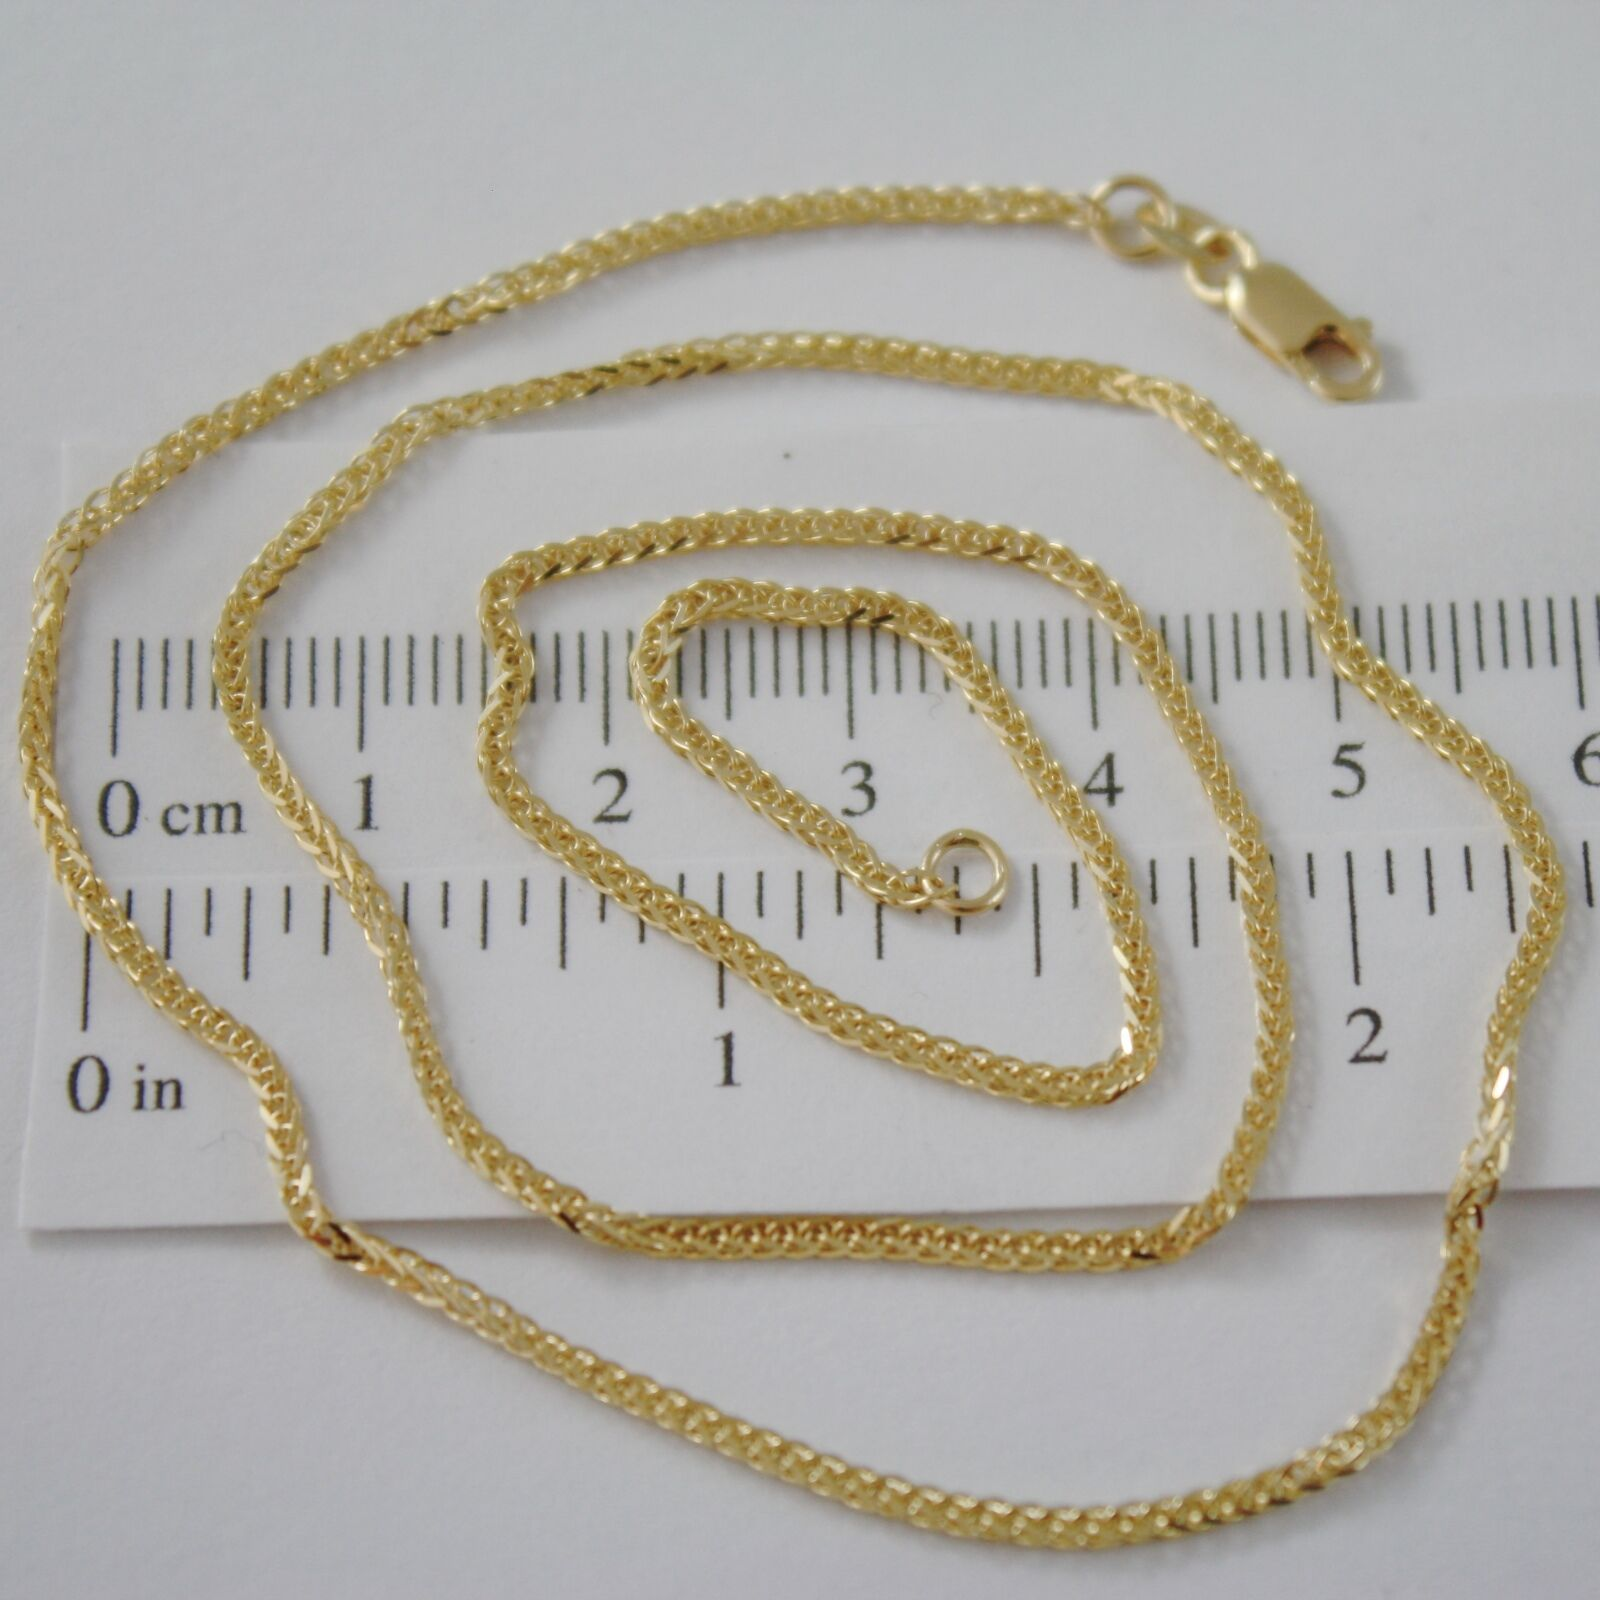 SOLID 18K YELLOW GOLD CHAIN NECKLACE 2MM EAR SQUARE LINK 19.69 IN, MADE IN ITALY